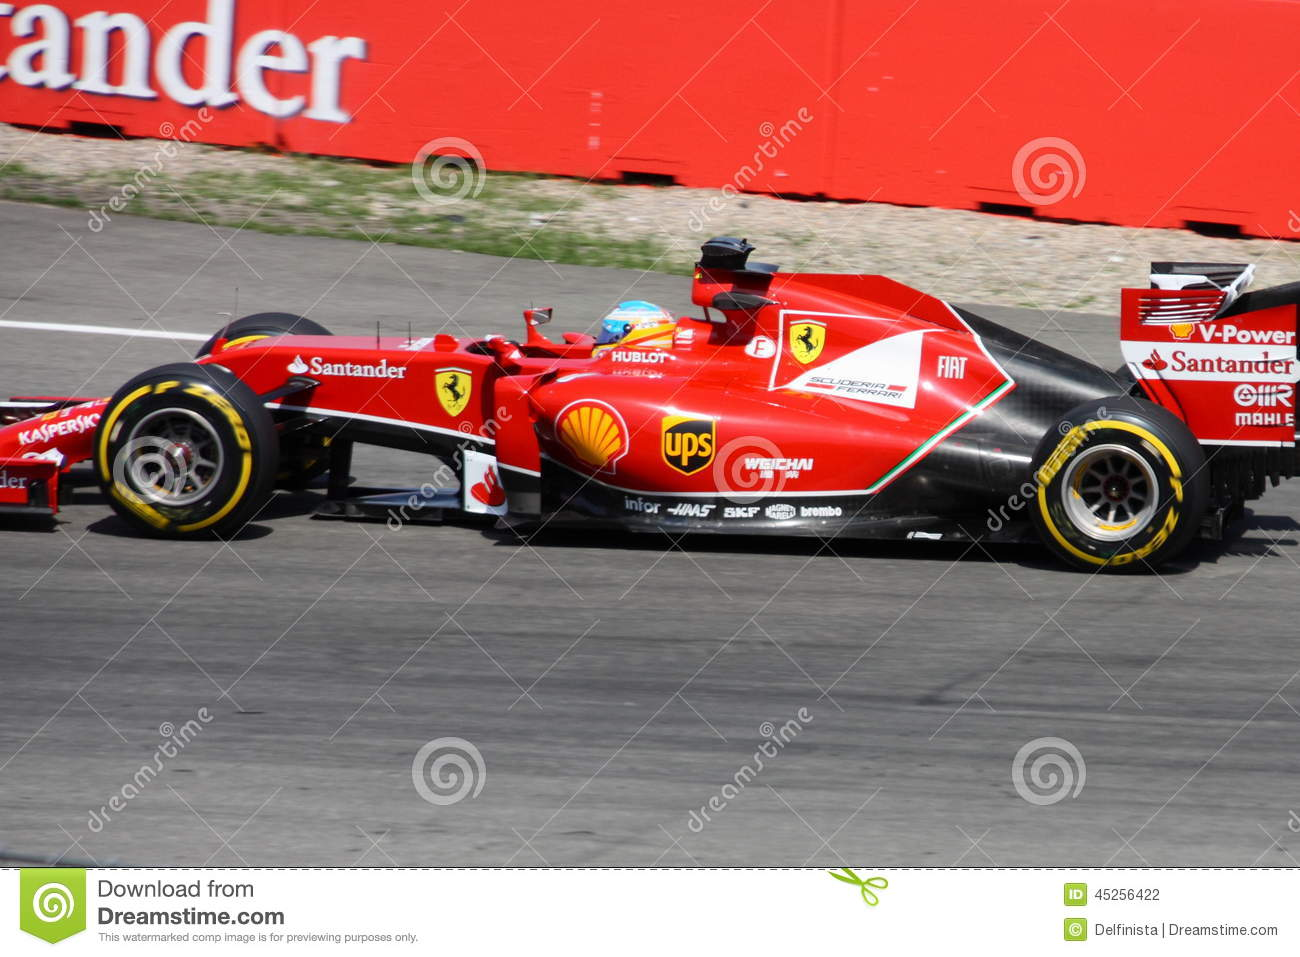 f1 photo voiture de ferrari de formule 1 fernando alonso photographie ditorial image. Black Bedroom Furniture Sets. Home Design Ideas